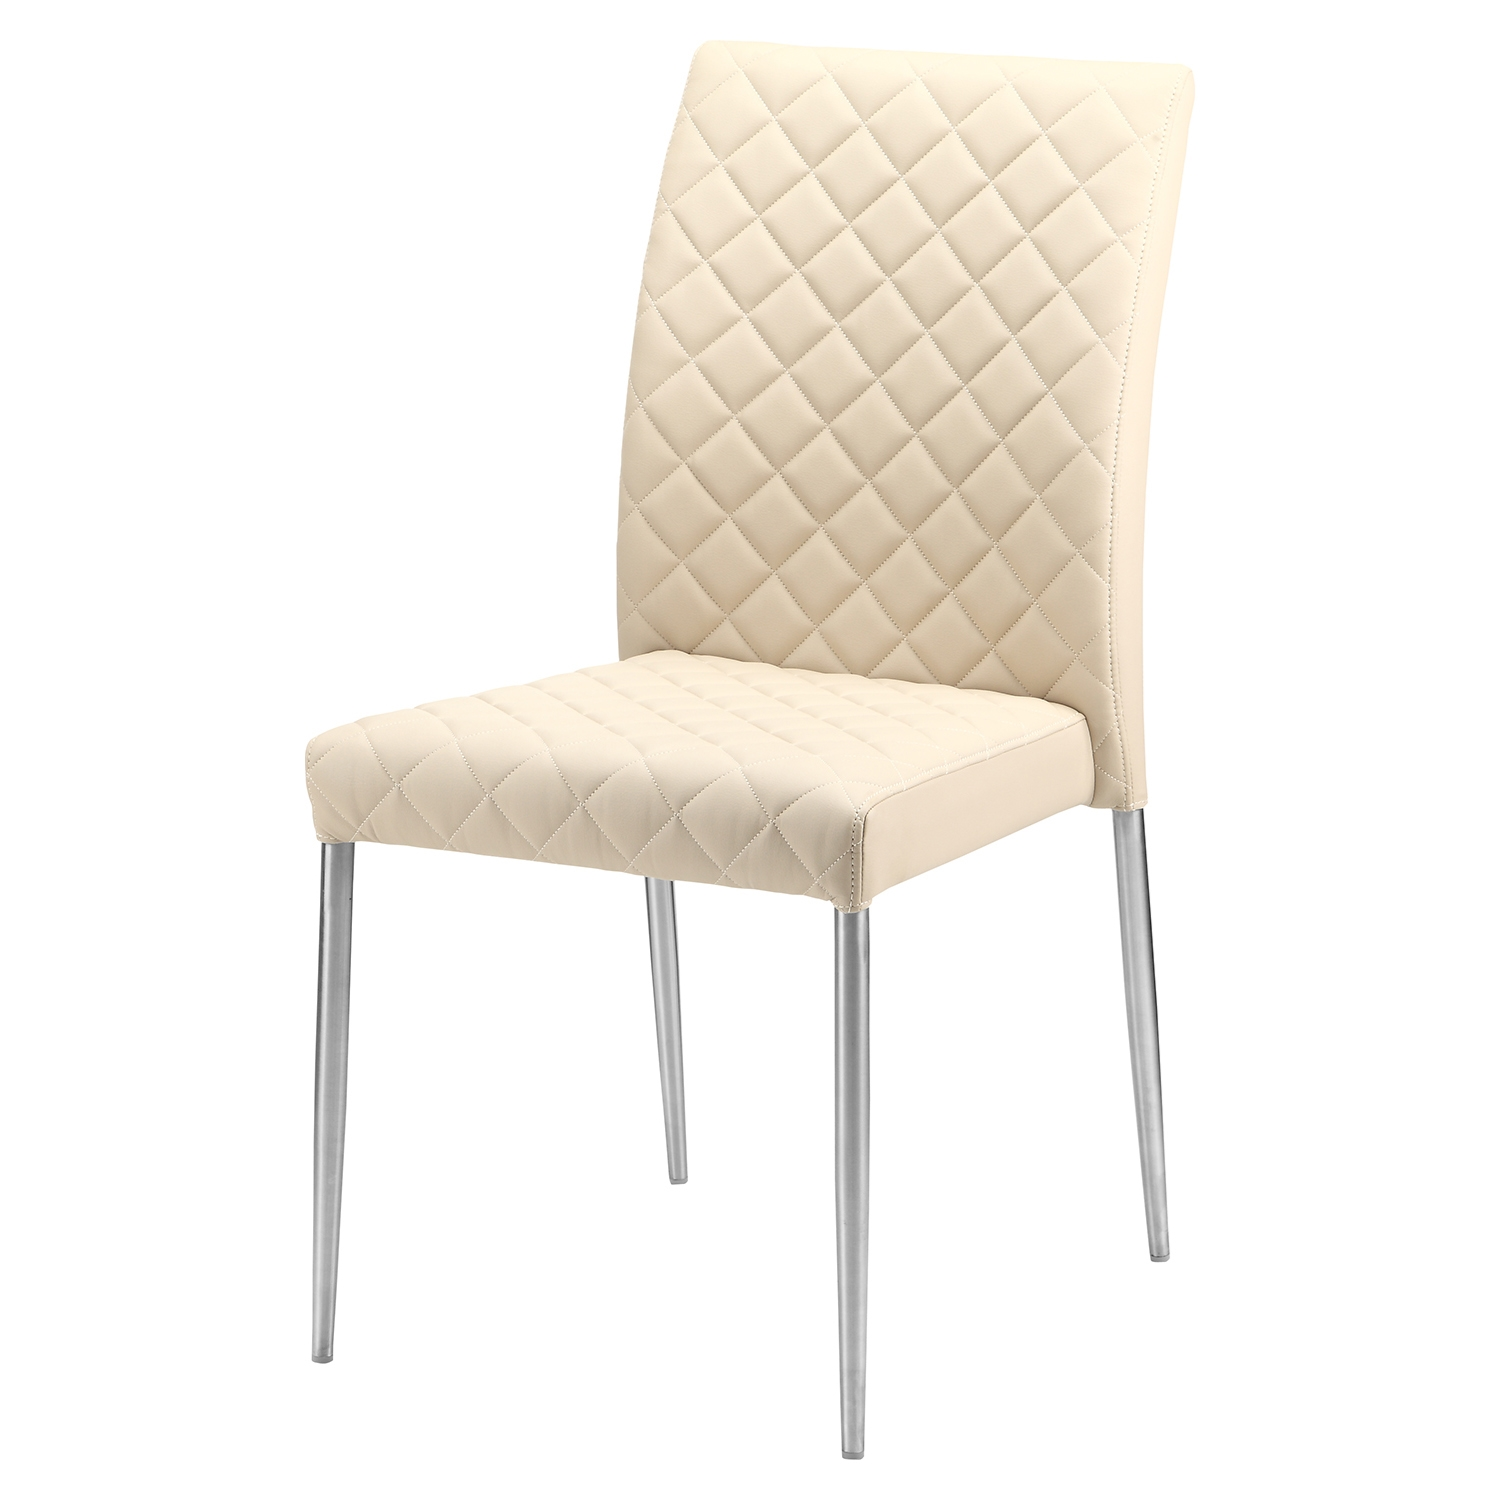 Cali Dining Chair - White (Set of 2) - MOES-ER-2006-65